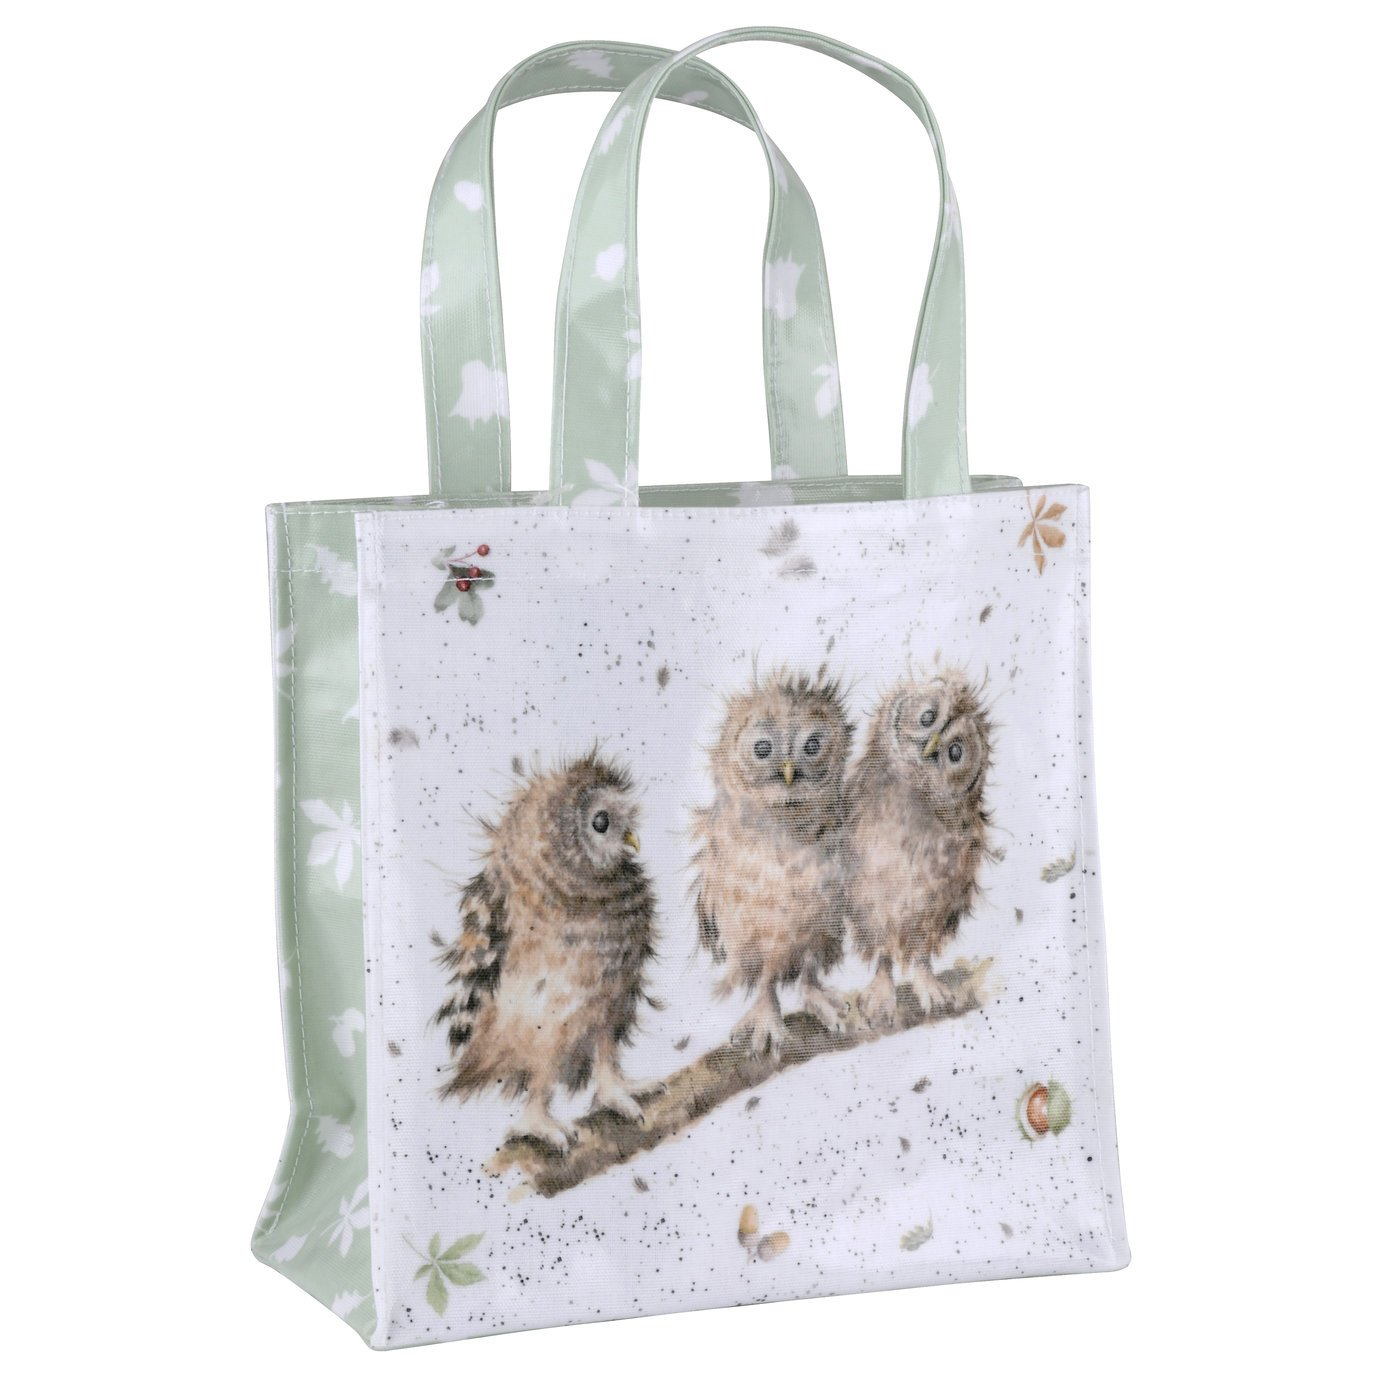 Pimpernel 25 x 25.5 x 11 cm Small You First (Owls) PVC Coated Wrendale Shopping Bag, Multi-Colour Portmeirion X0015348825